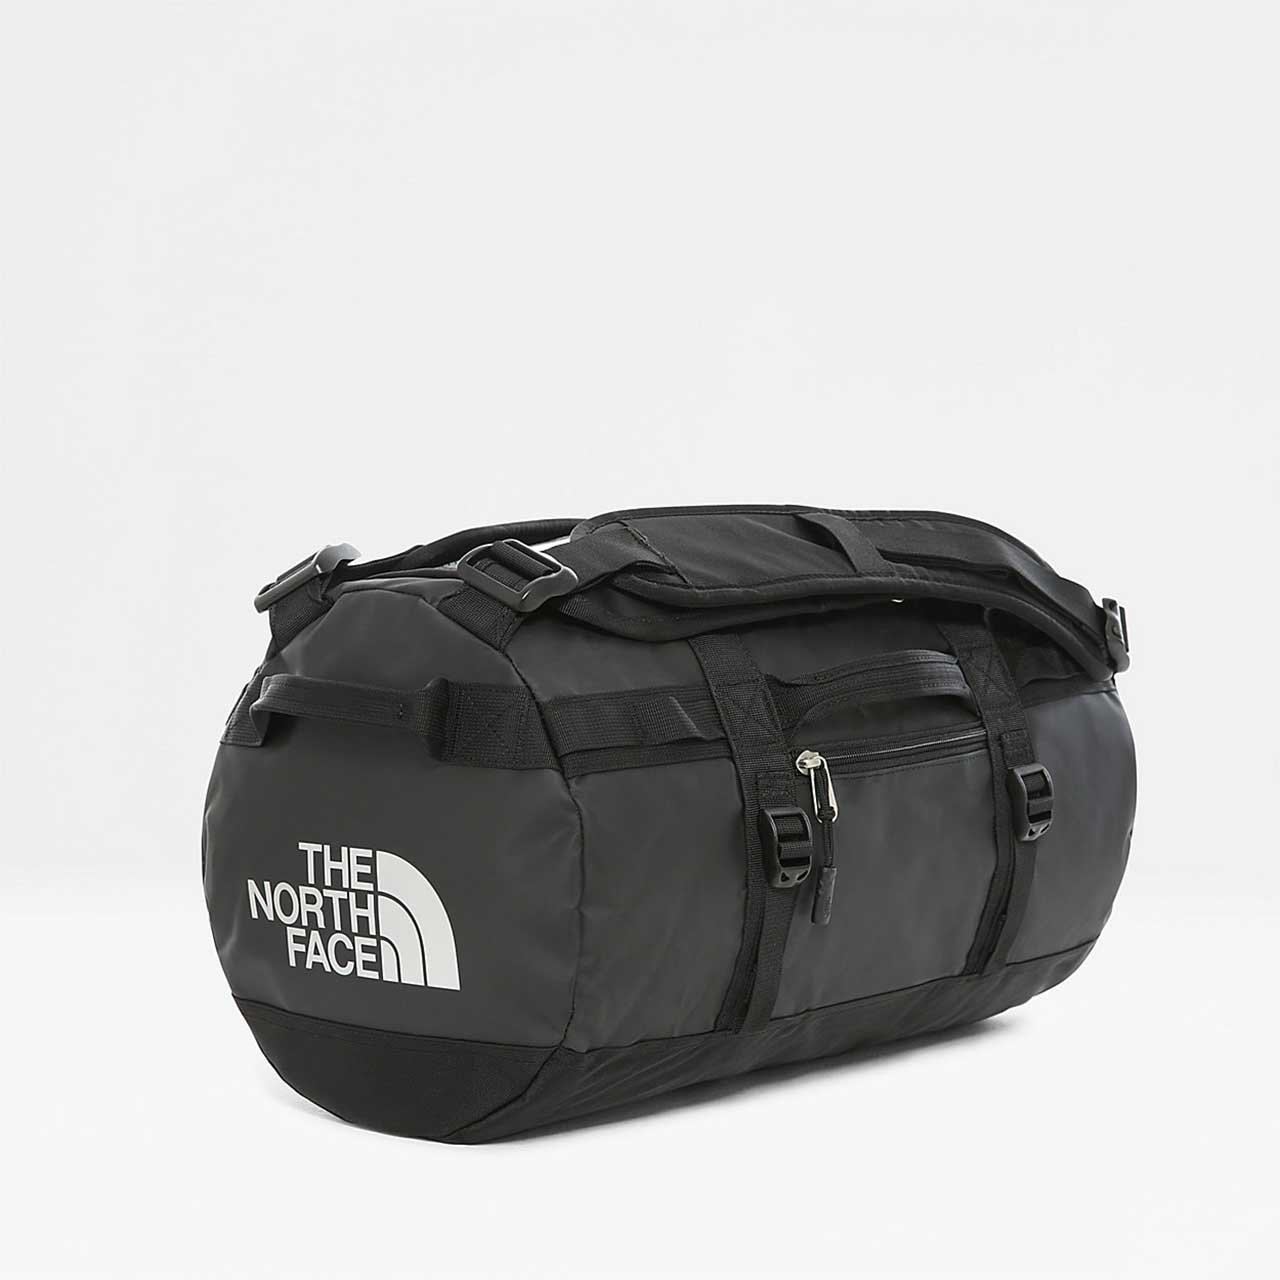 THE NORTH FACE Base Camp Duffel XS, městský